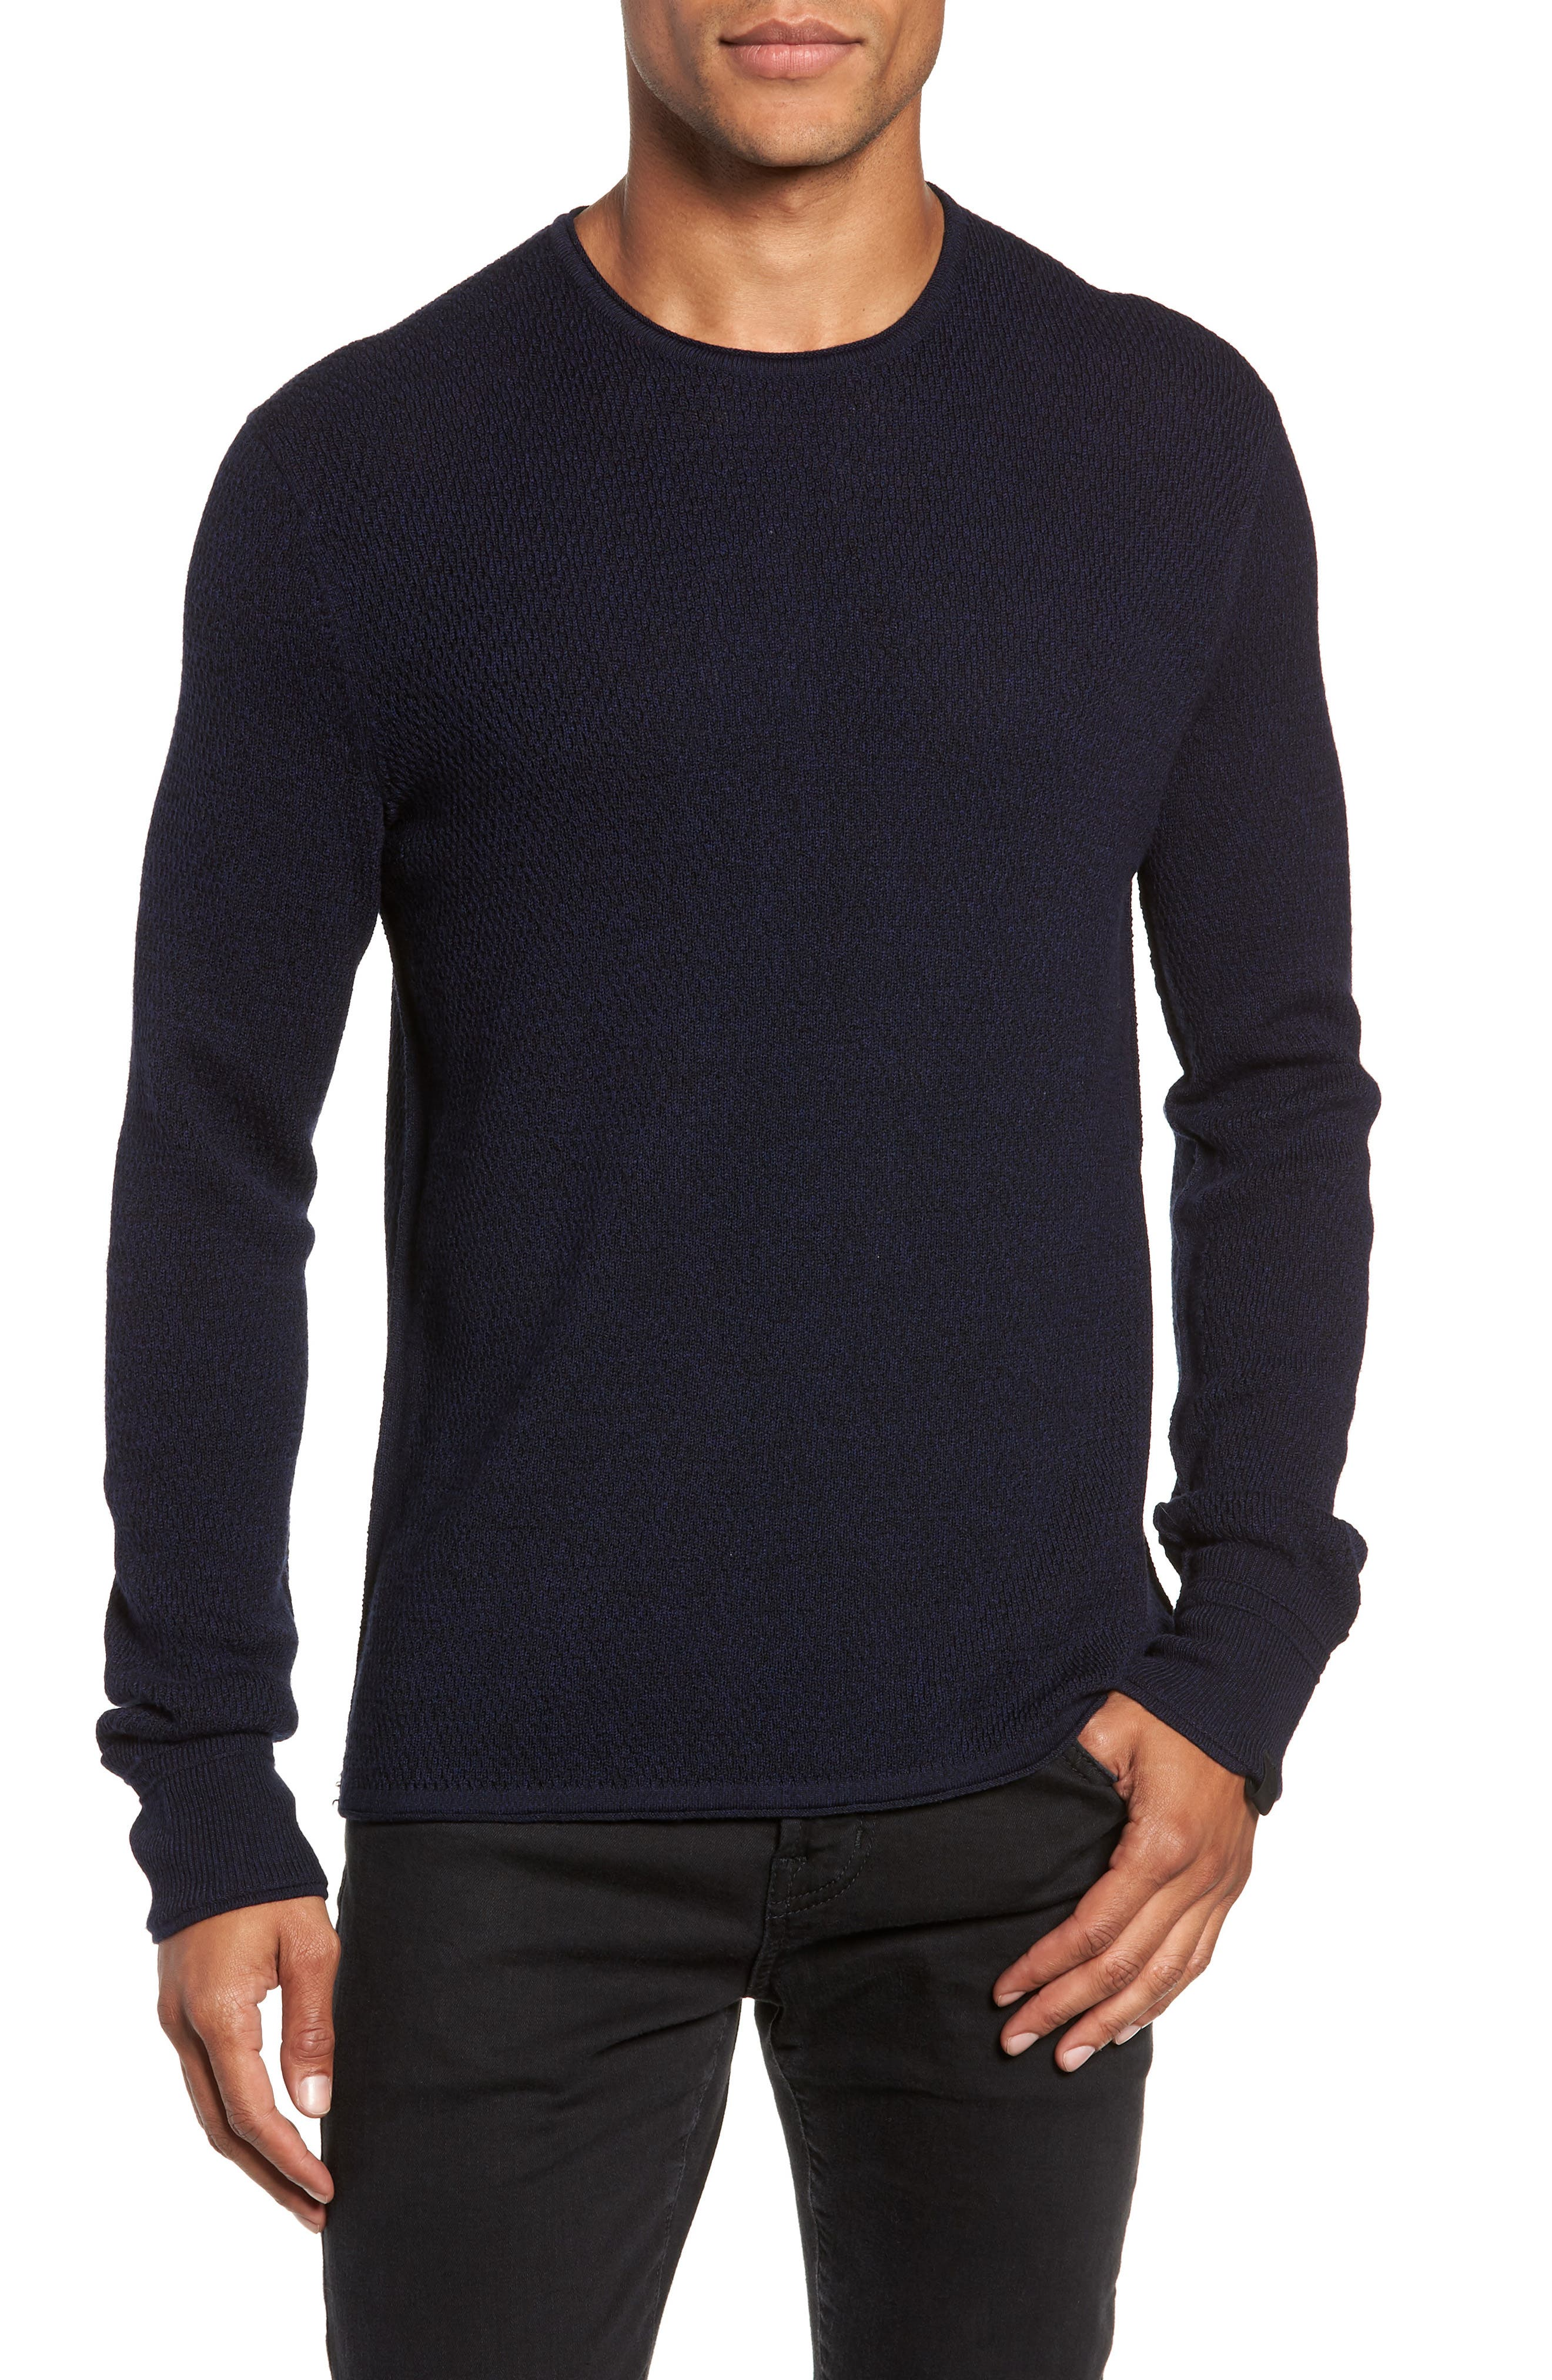 Gregory Wool Blend Crewneck Sweater,                             Main thumbnail 1, color,                             NAVY